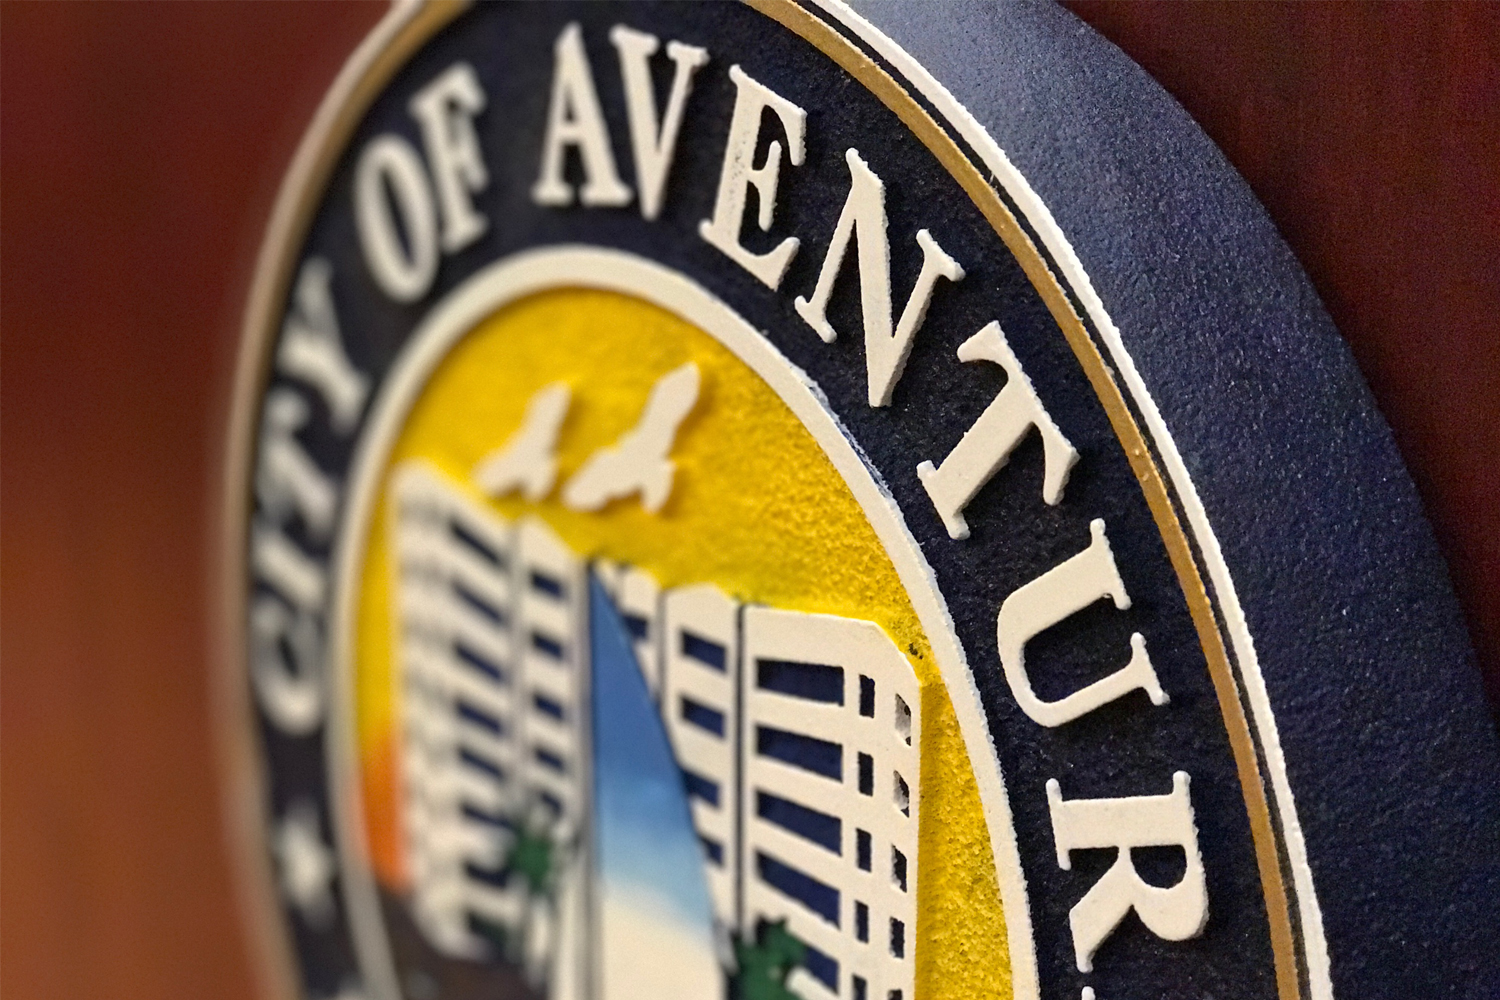 portfolio_signs_city_of_aventura.jpg